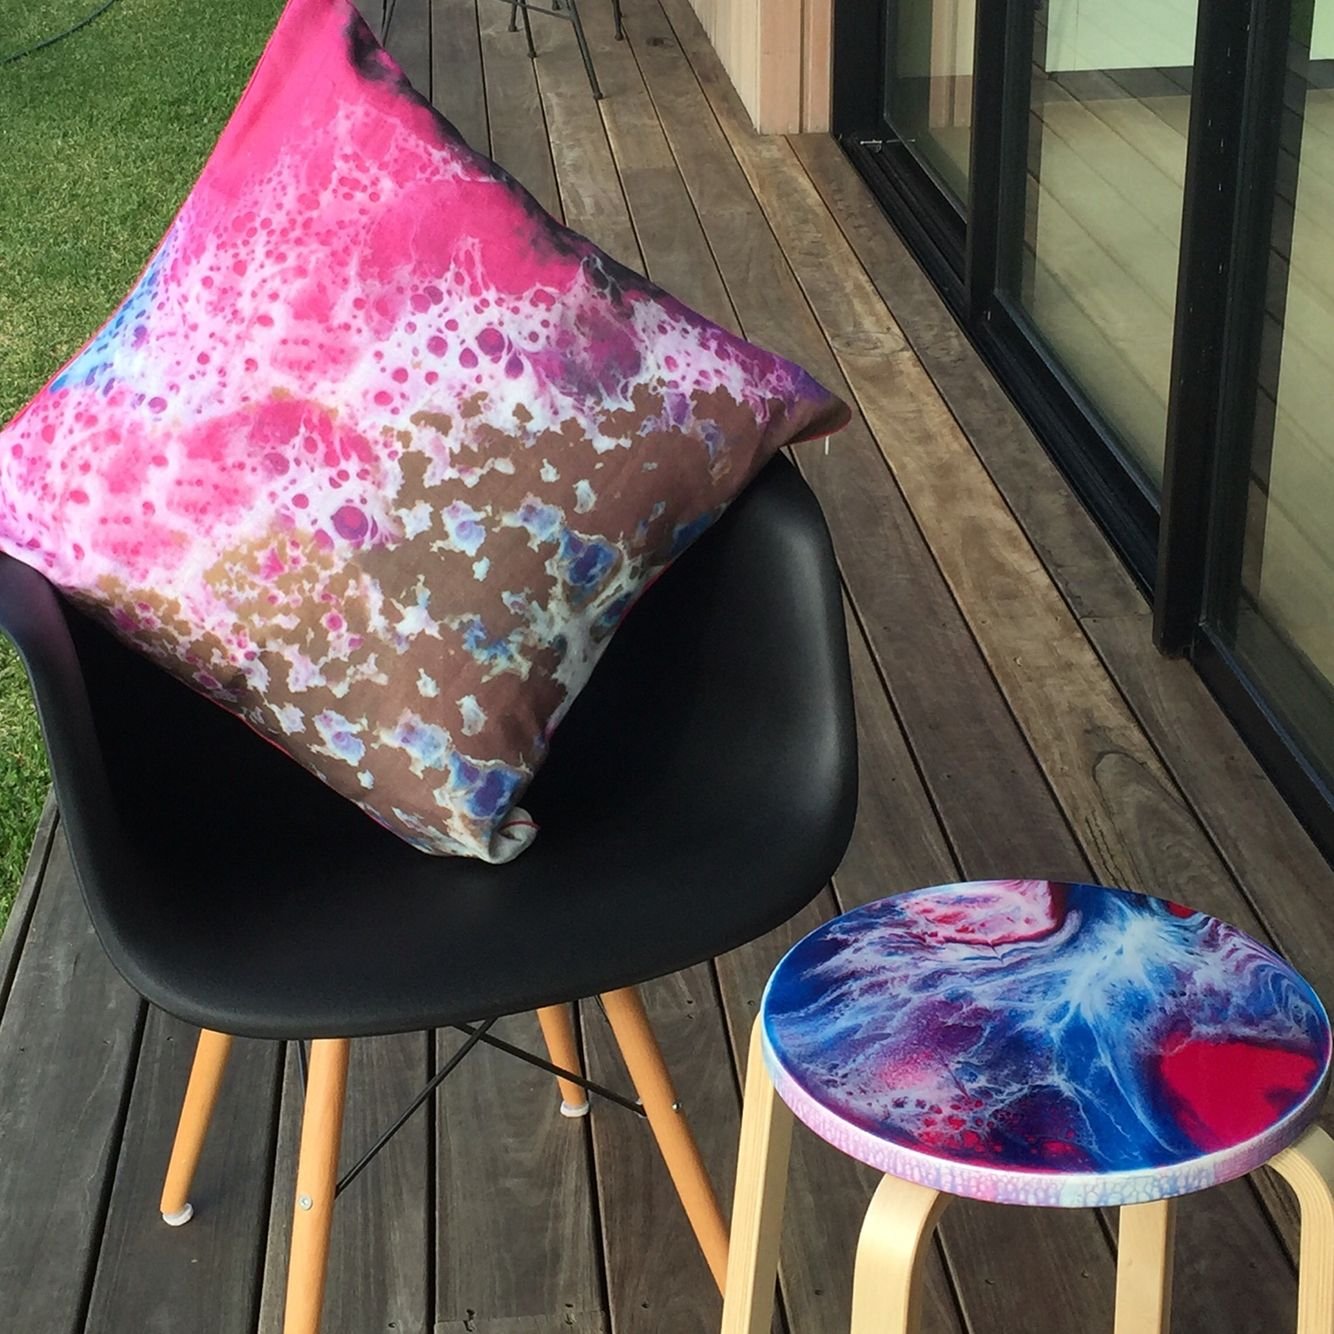 New cushion design and side table joartdesigns interior design